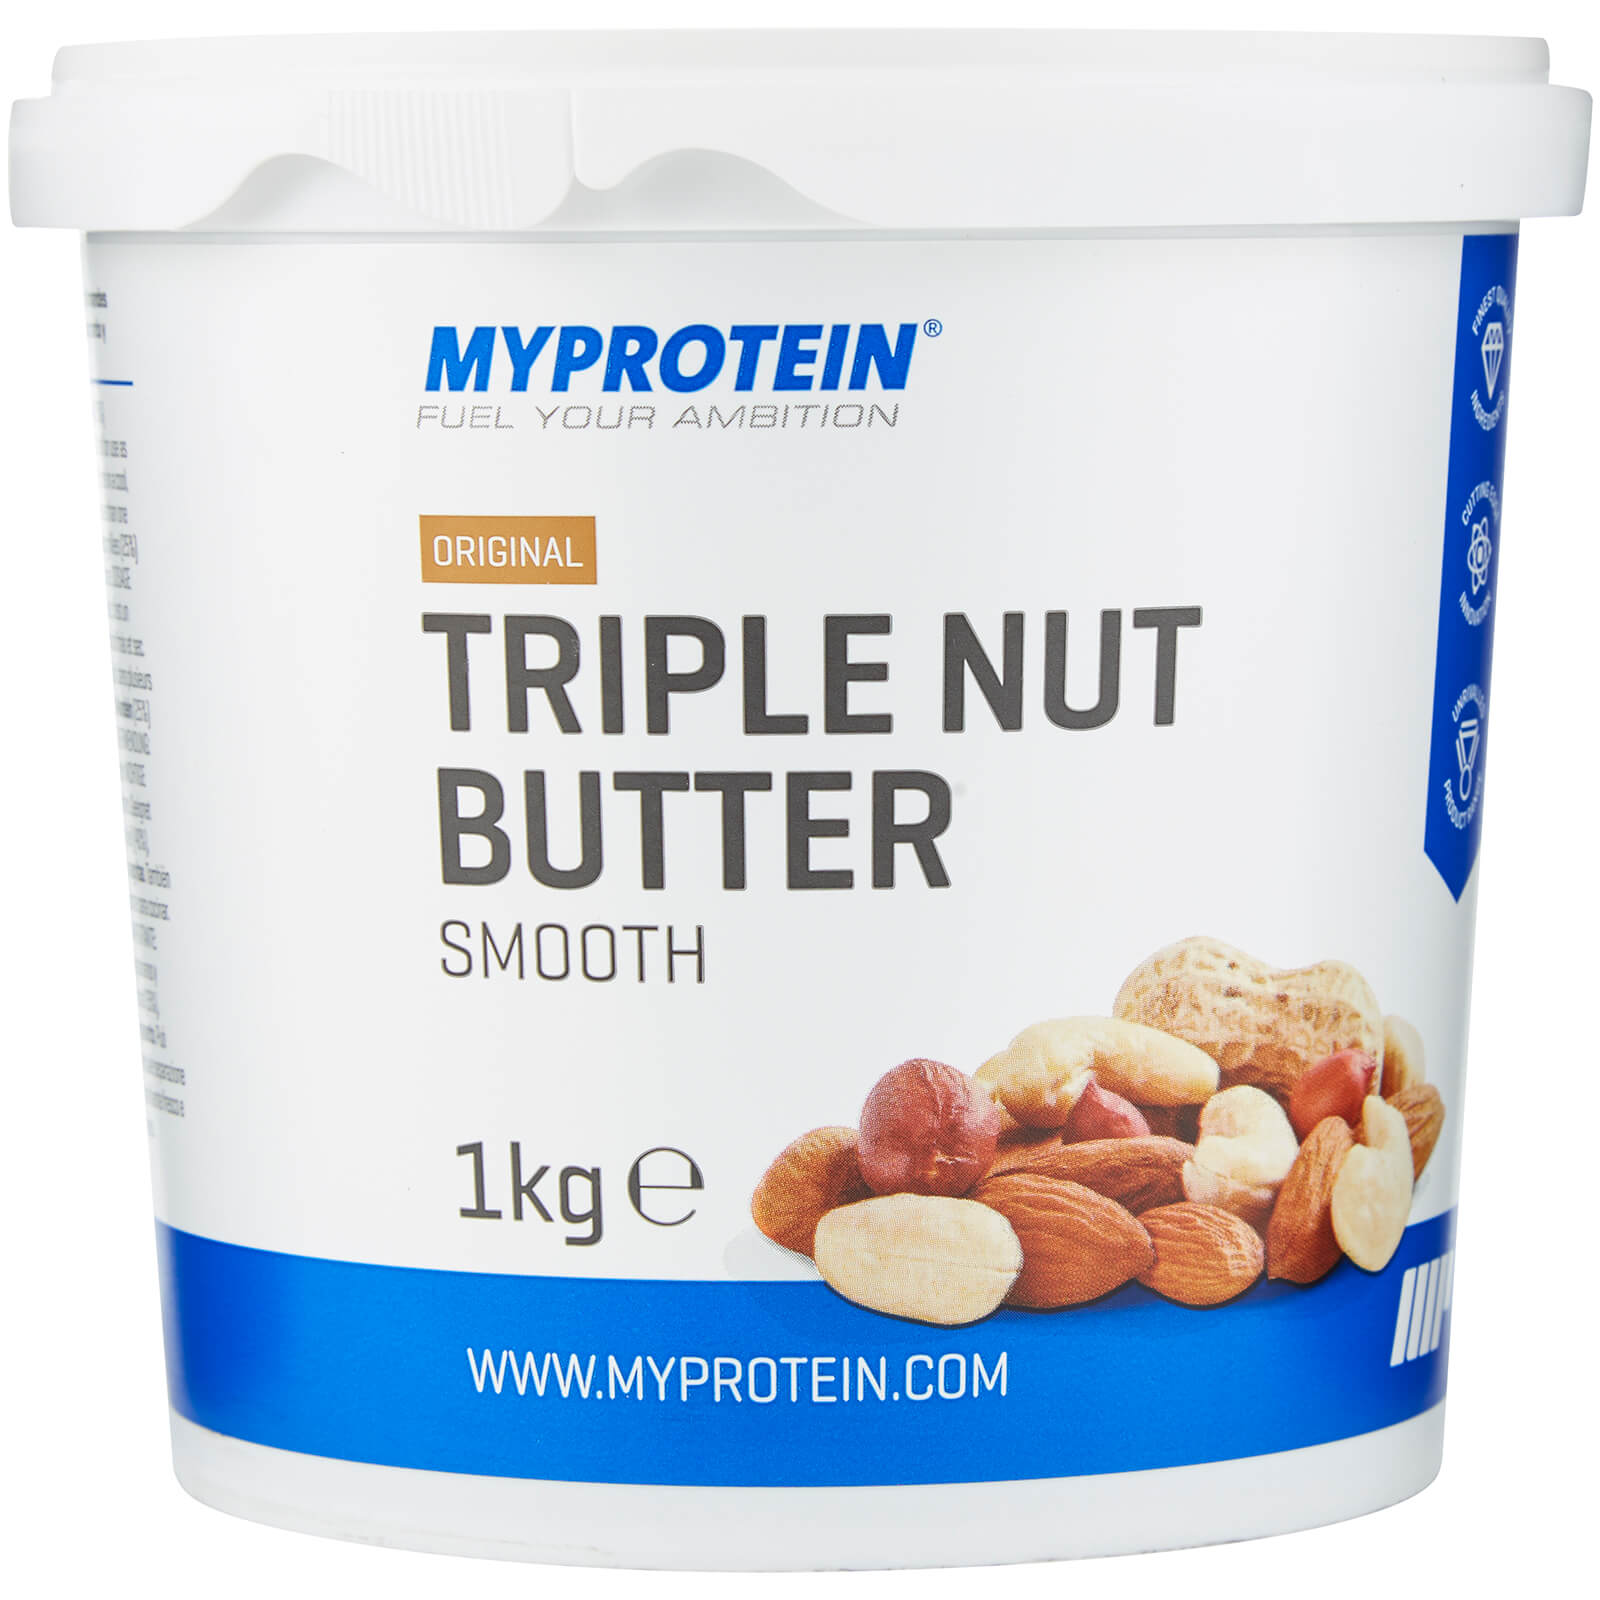 Mixed Nut Butter (Peanut, Cashew and Almond)